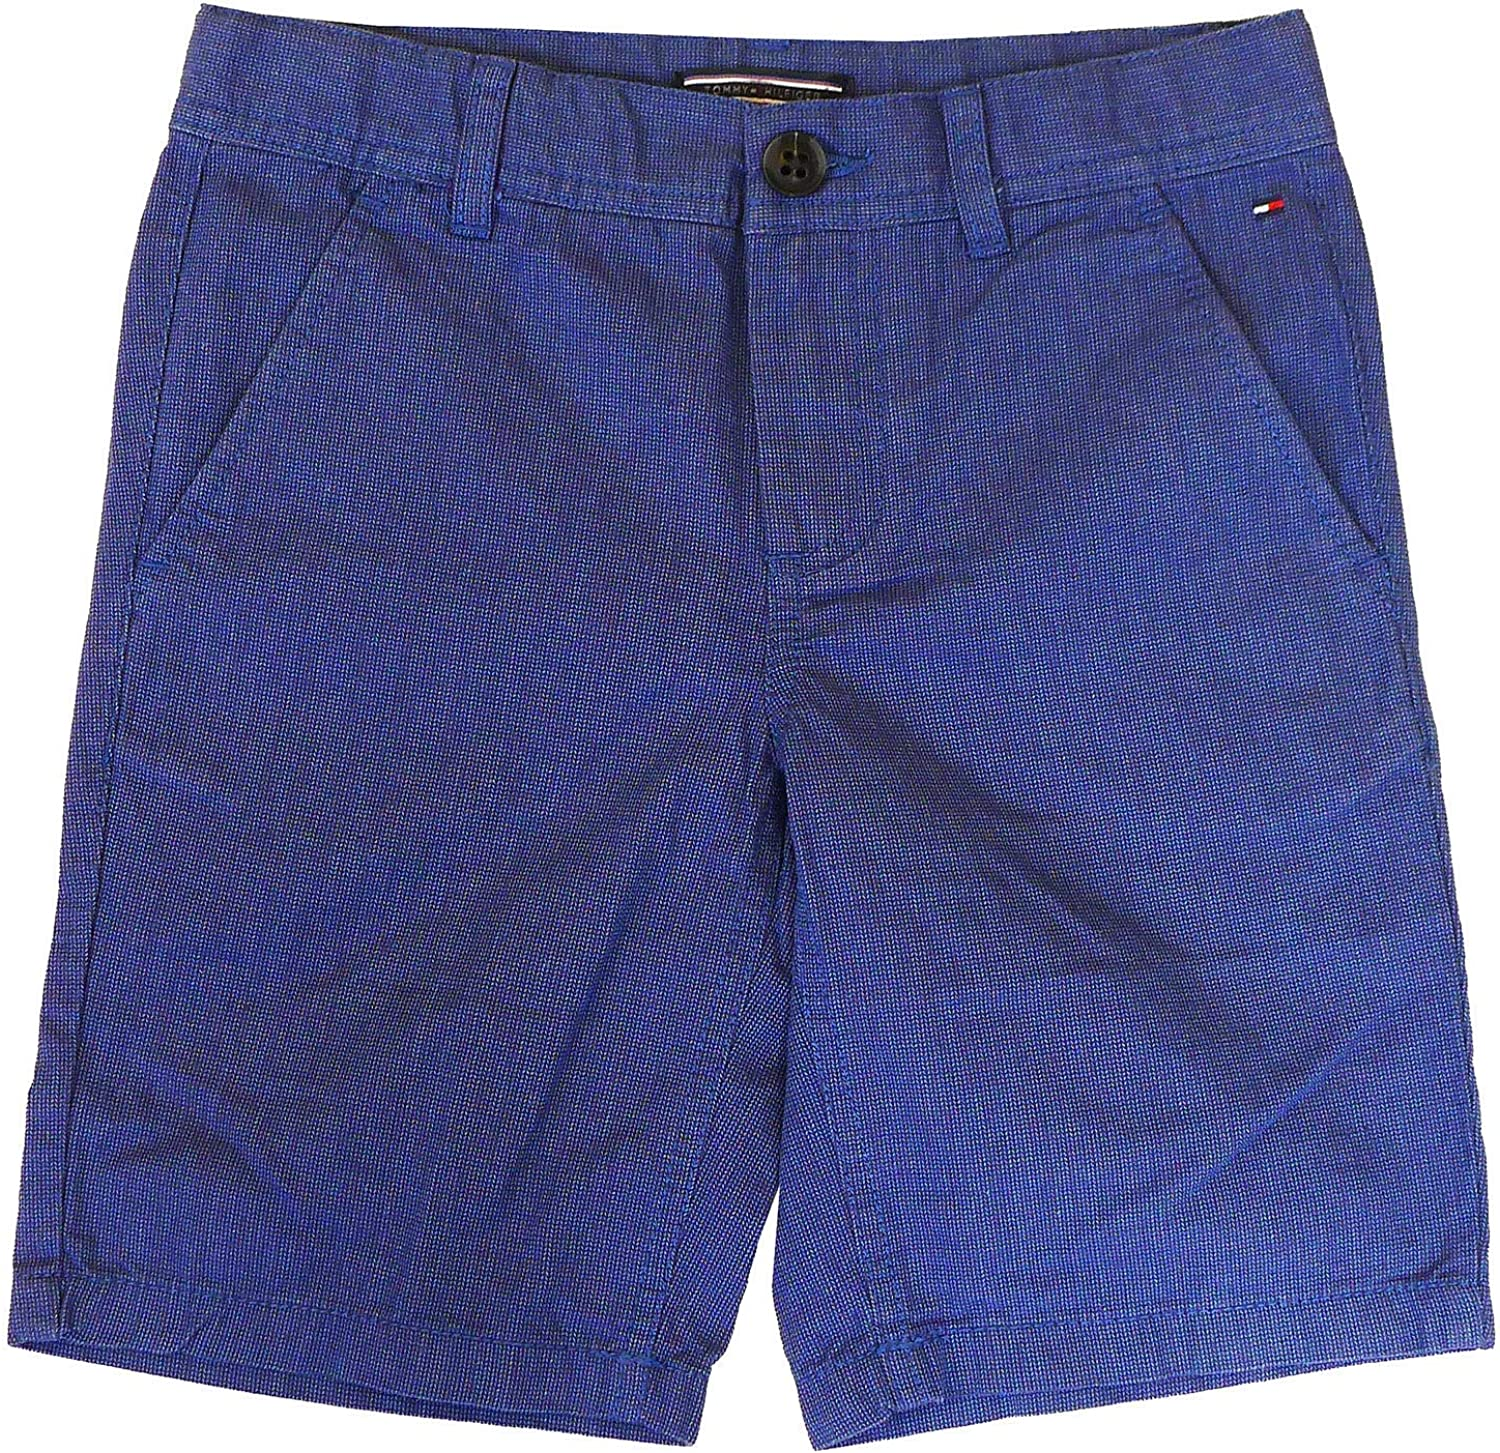 8 Colours Get Wivvit Boys Assorted Designer Chino Cotton Summer Shorts Sizes from 3 to 10 Years